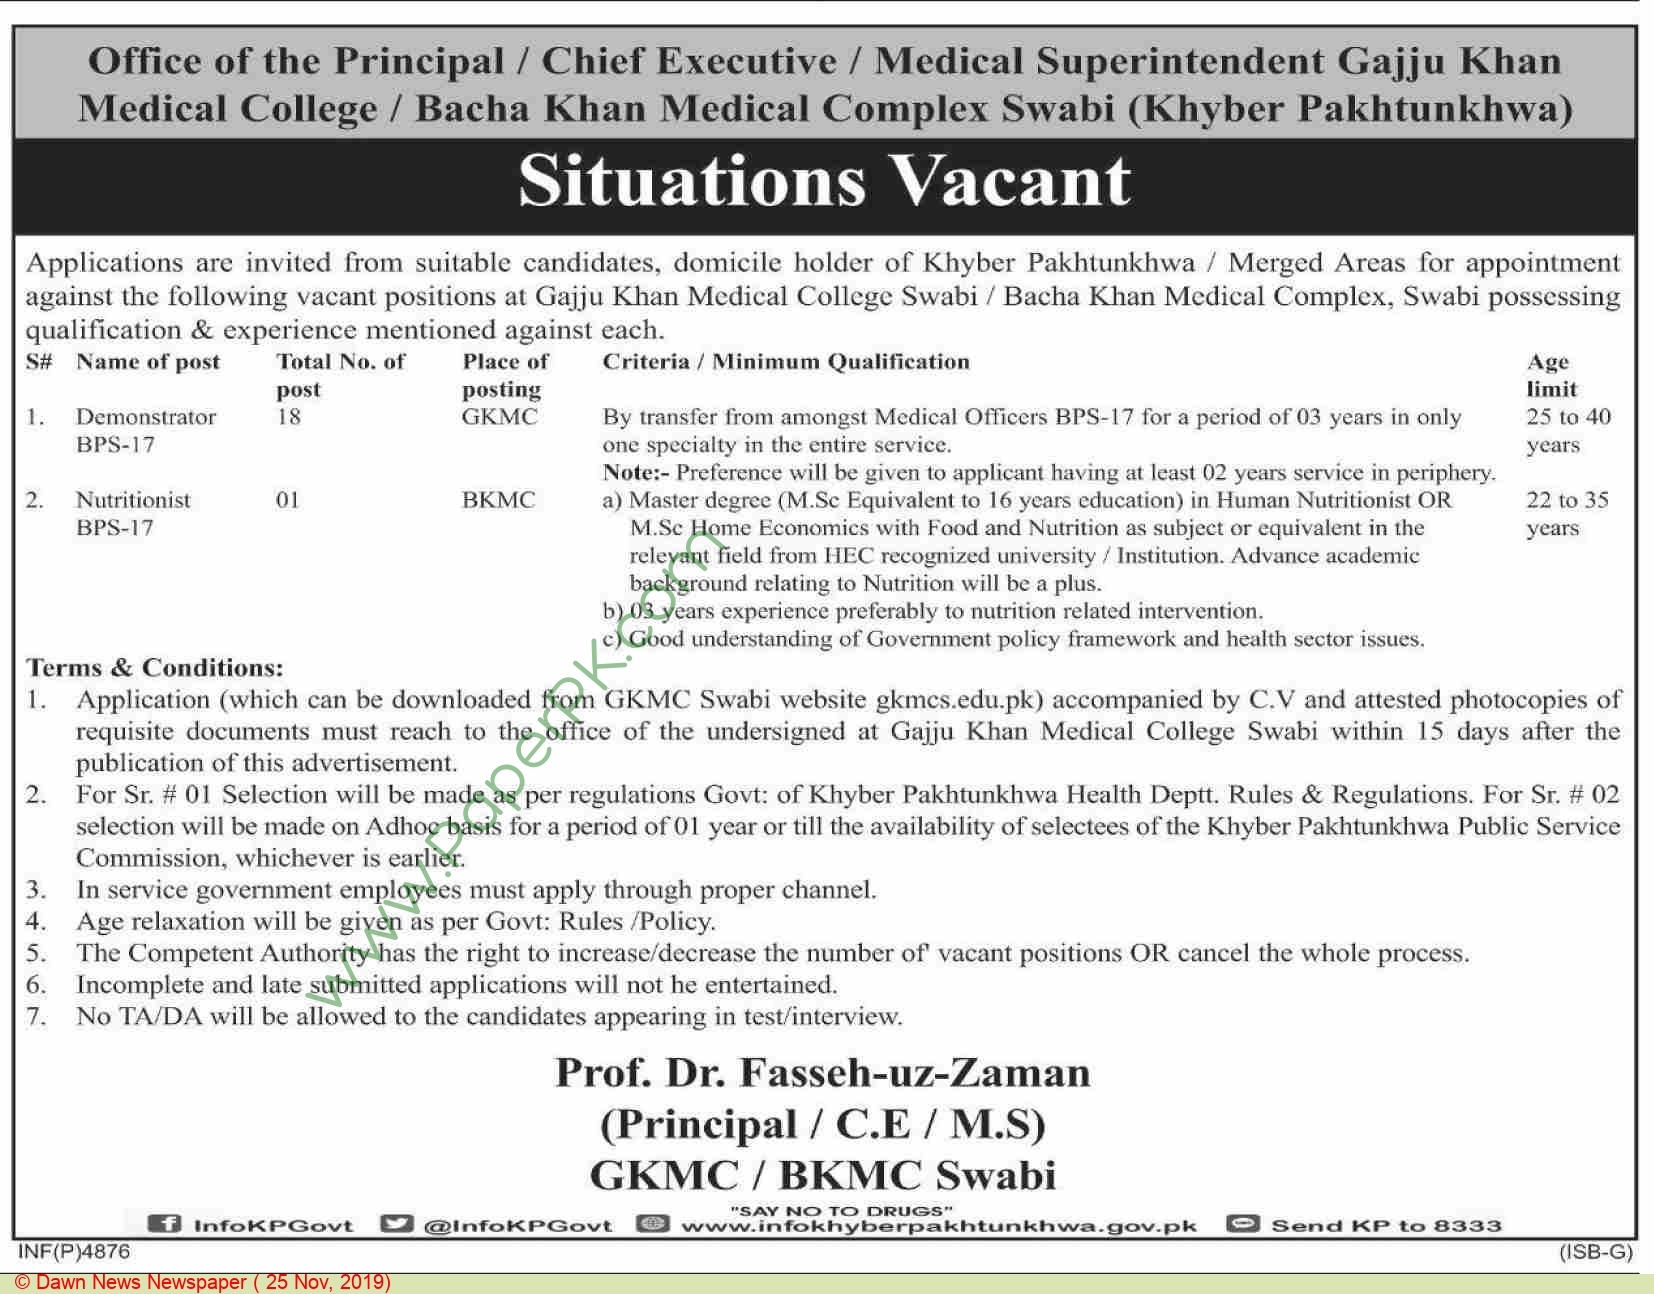 Gajju Khan Medical College Swabi Jobs For Demonstrator, Nutritionist